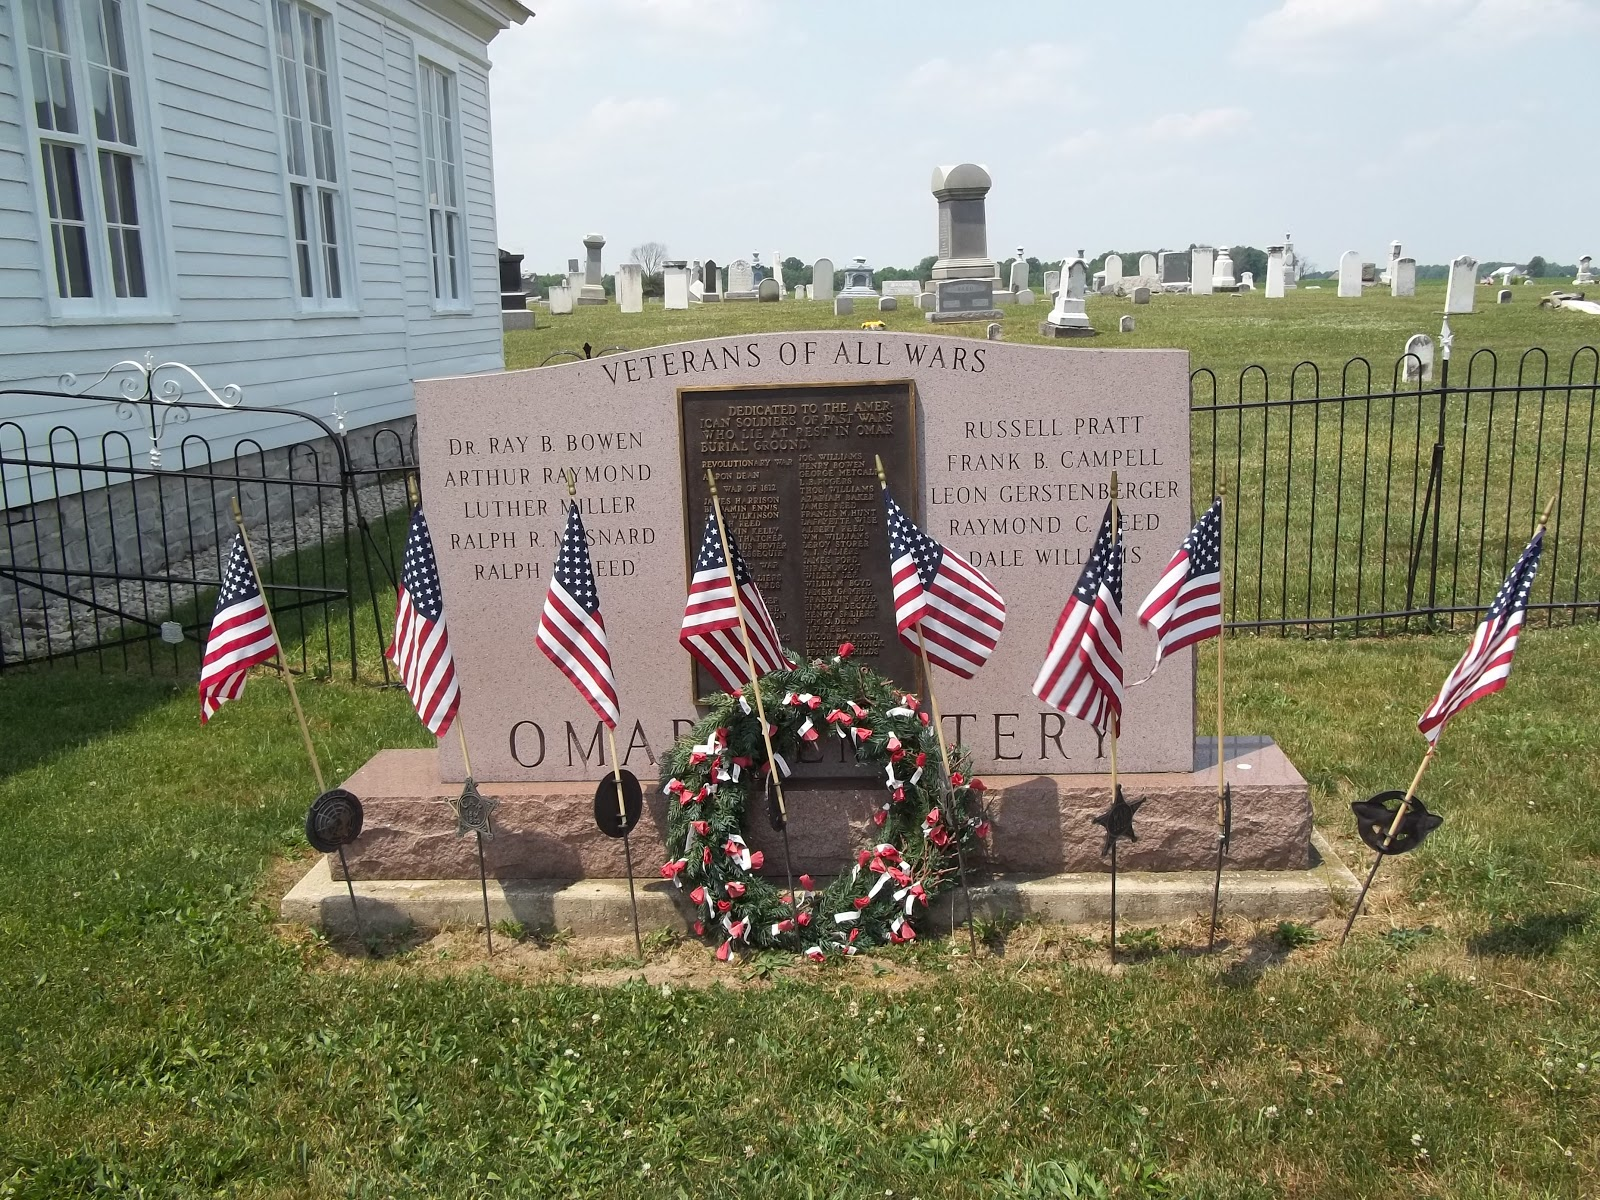 guest speaker will be marcus collins a vietnam veteran from norwalk who enlisted from monroeville a historic walking tour of the cemetery will be given by